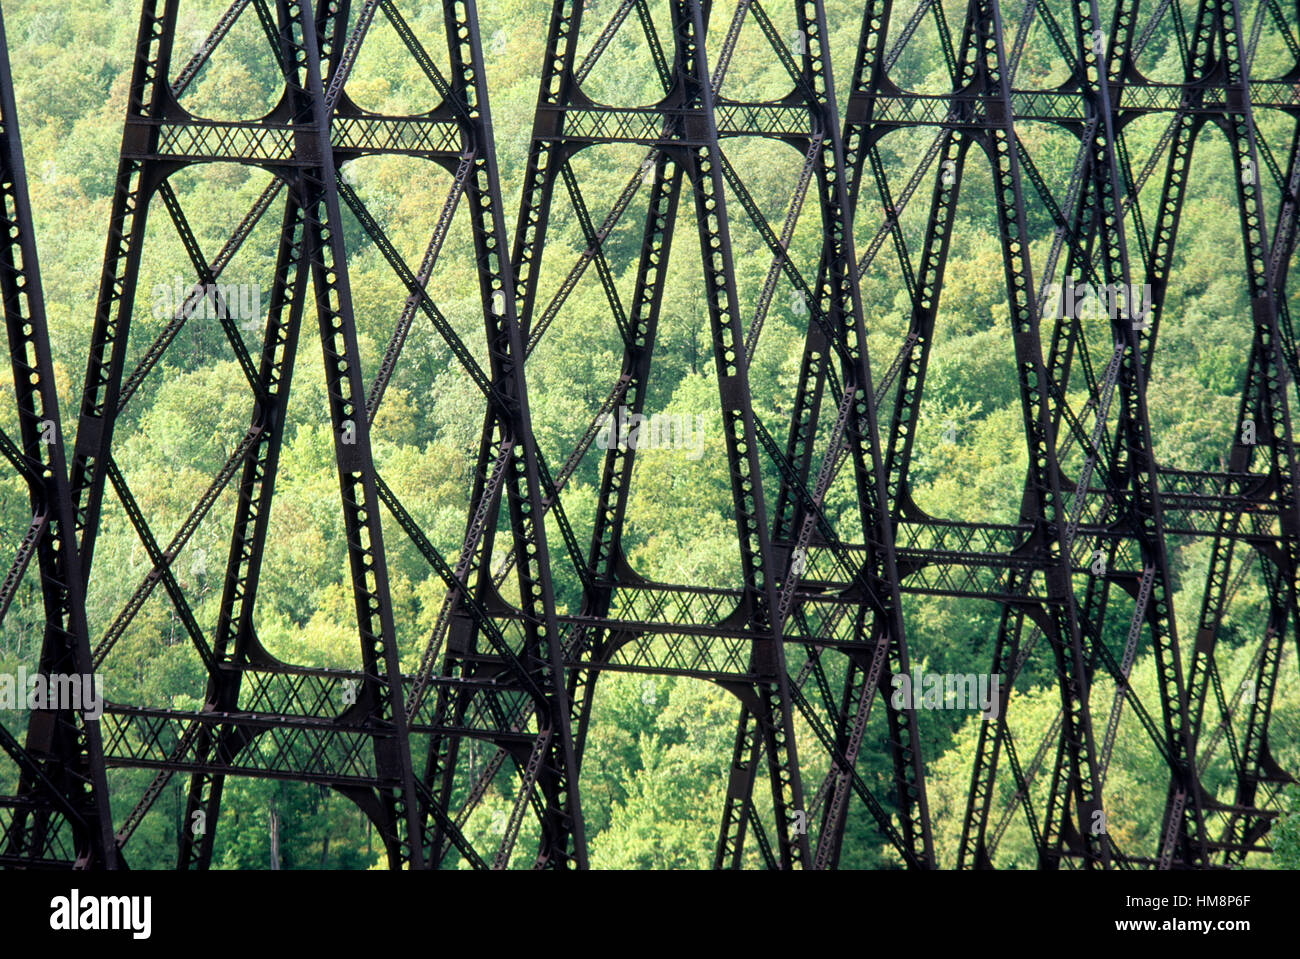 Kinzua Bridge (before collapse), Kinzua Bridge State Park, Pennsylvania. - Stock Image